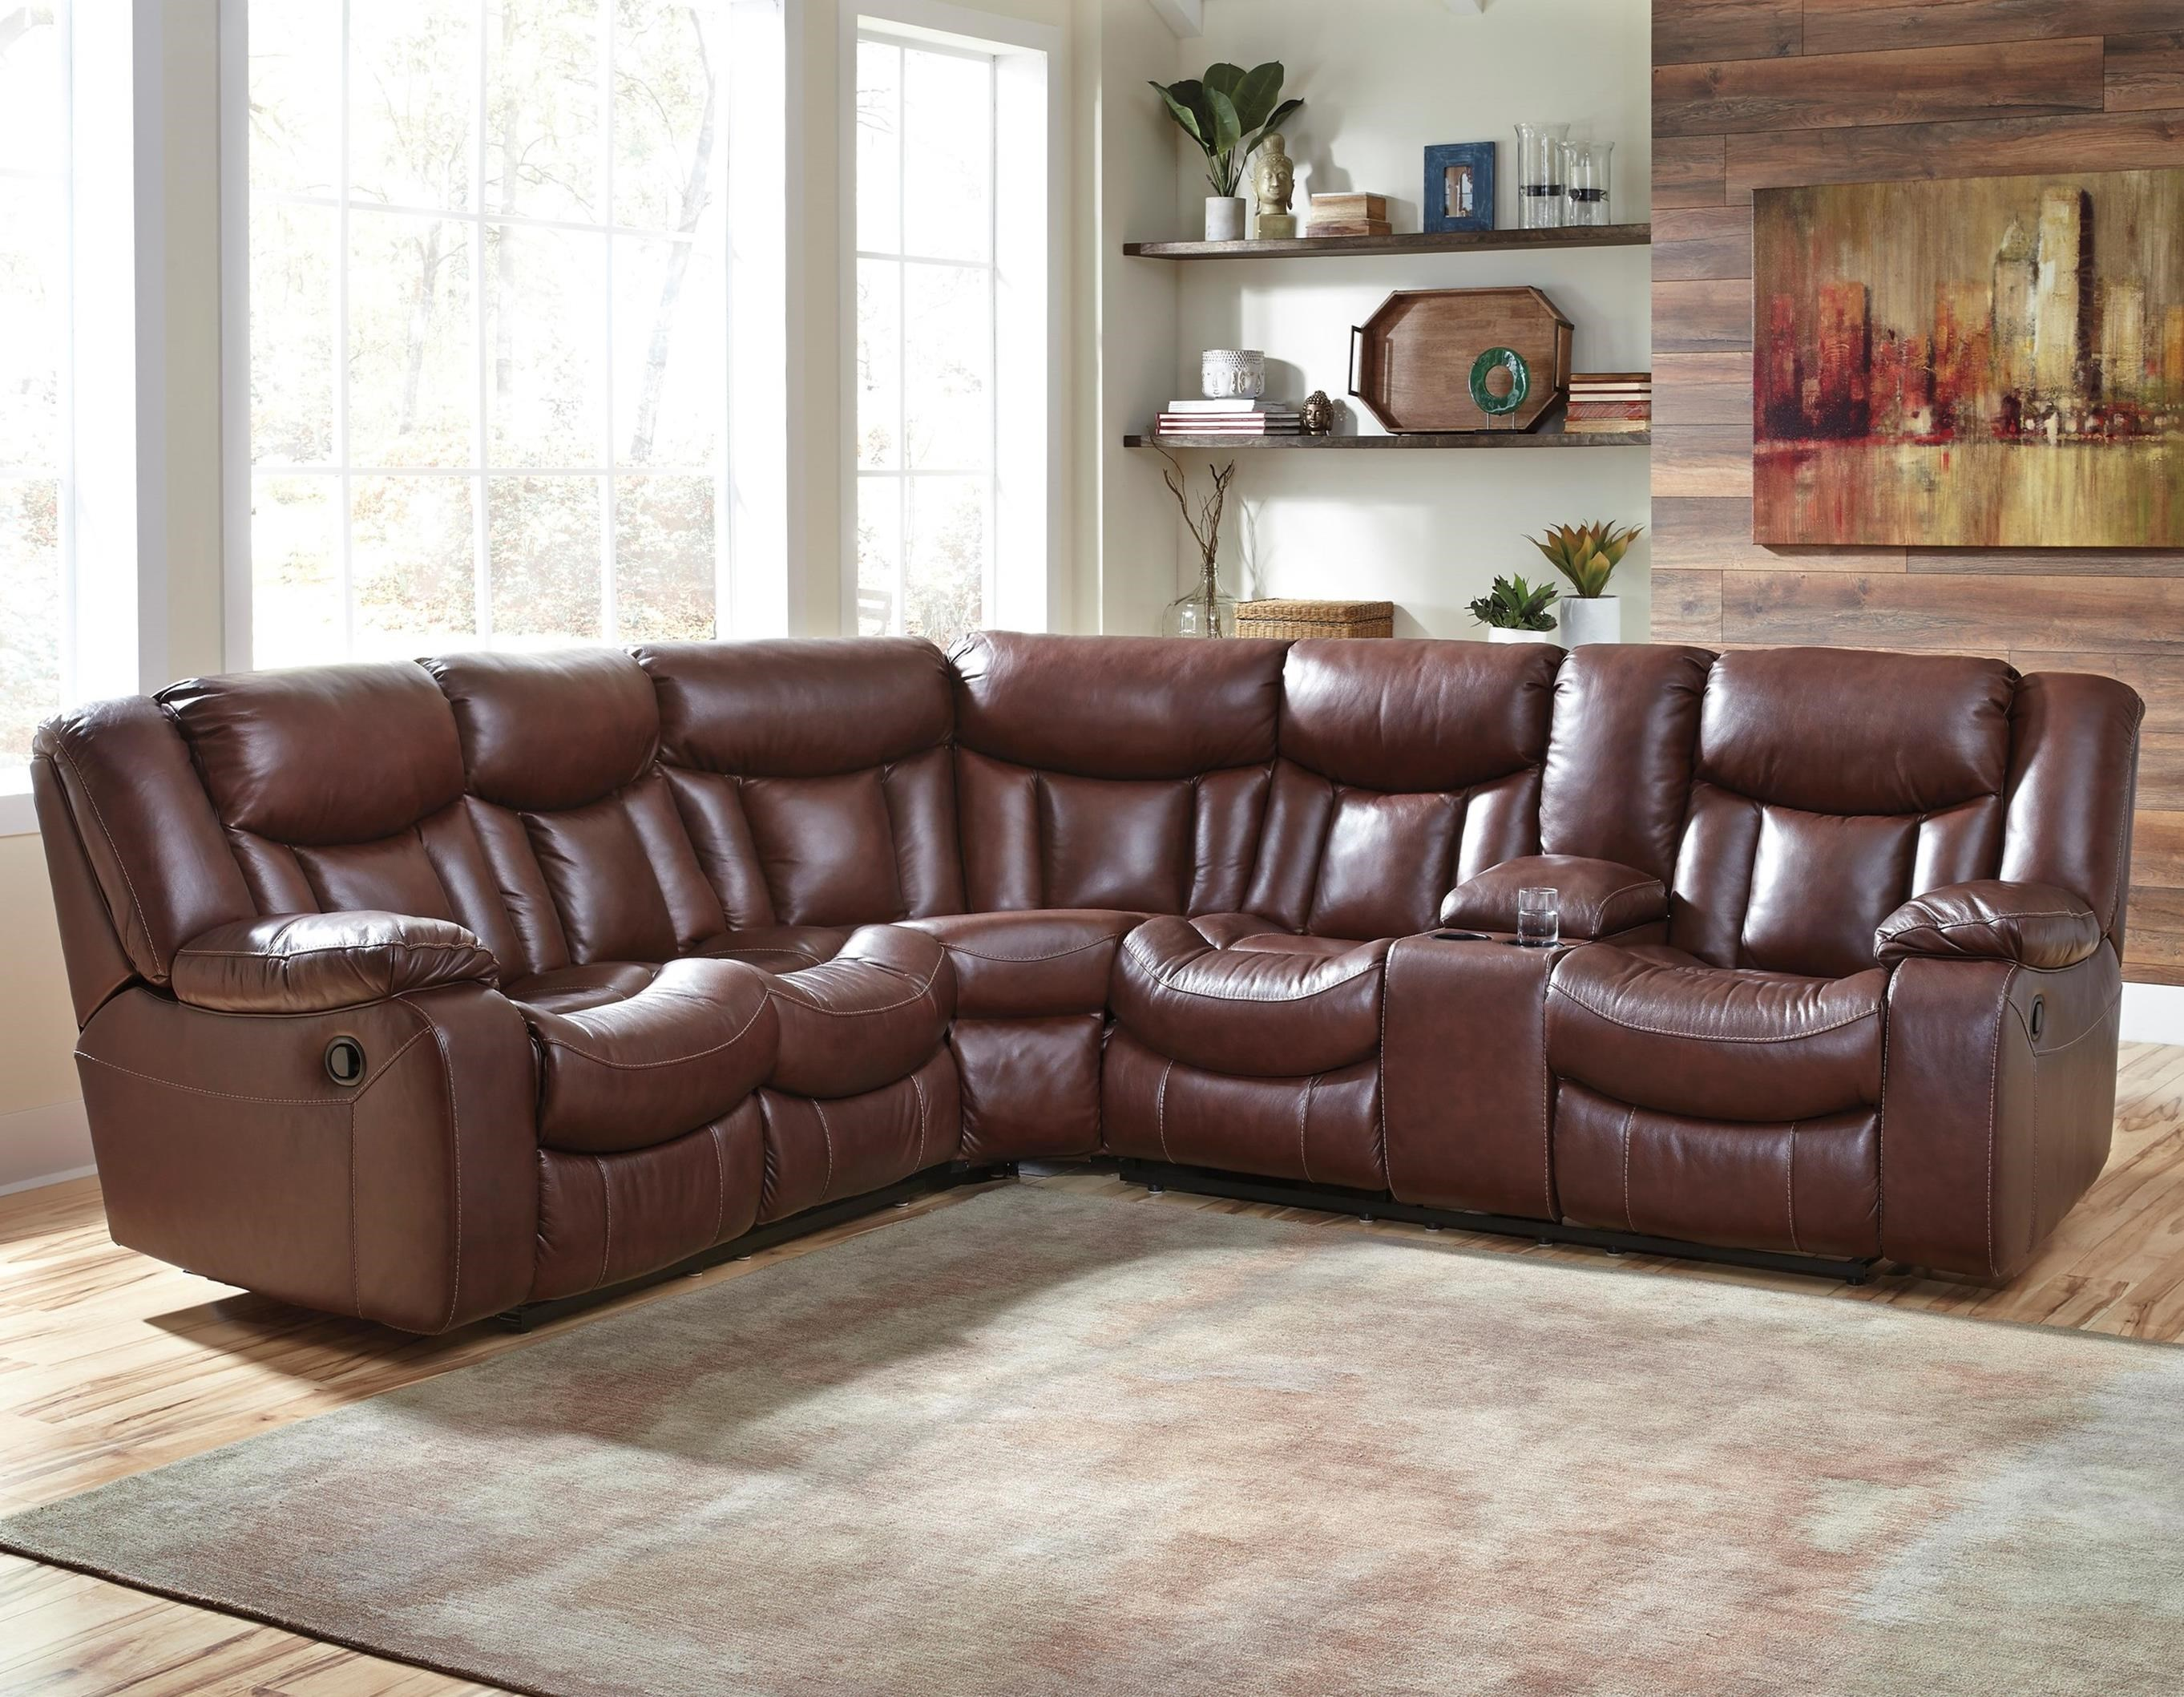 Benchcraft Amaroo 2-Piece Reclining Sectional  - Item Number: 1361048+49